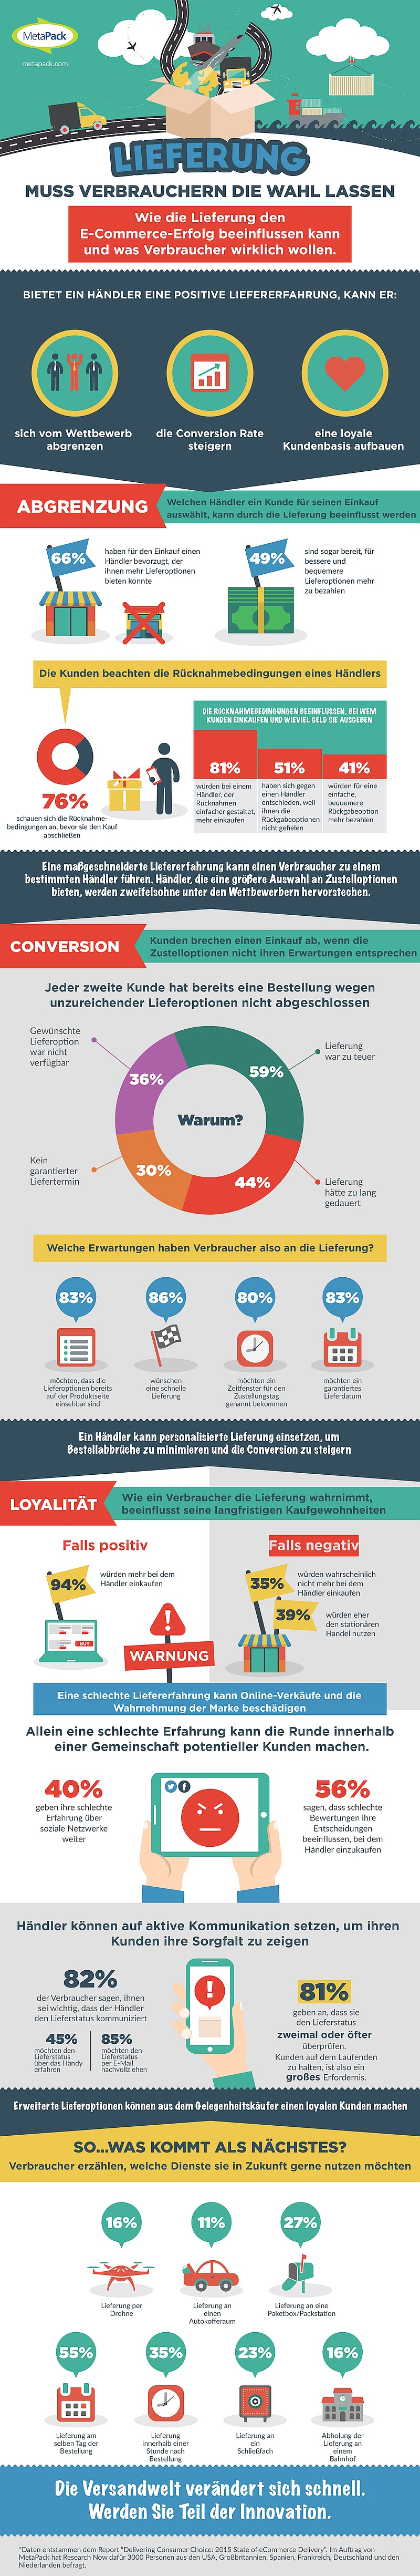 infografik metapack e-commerce retouren